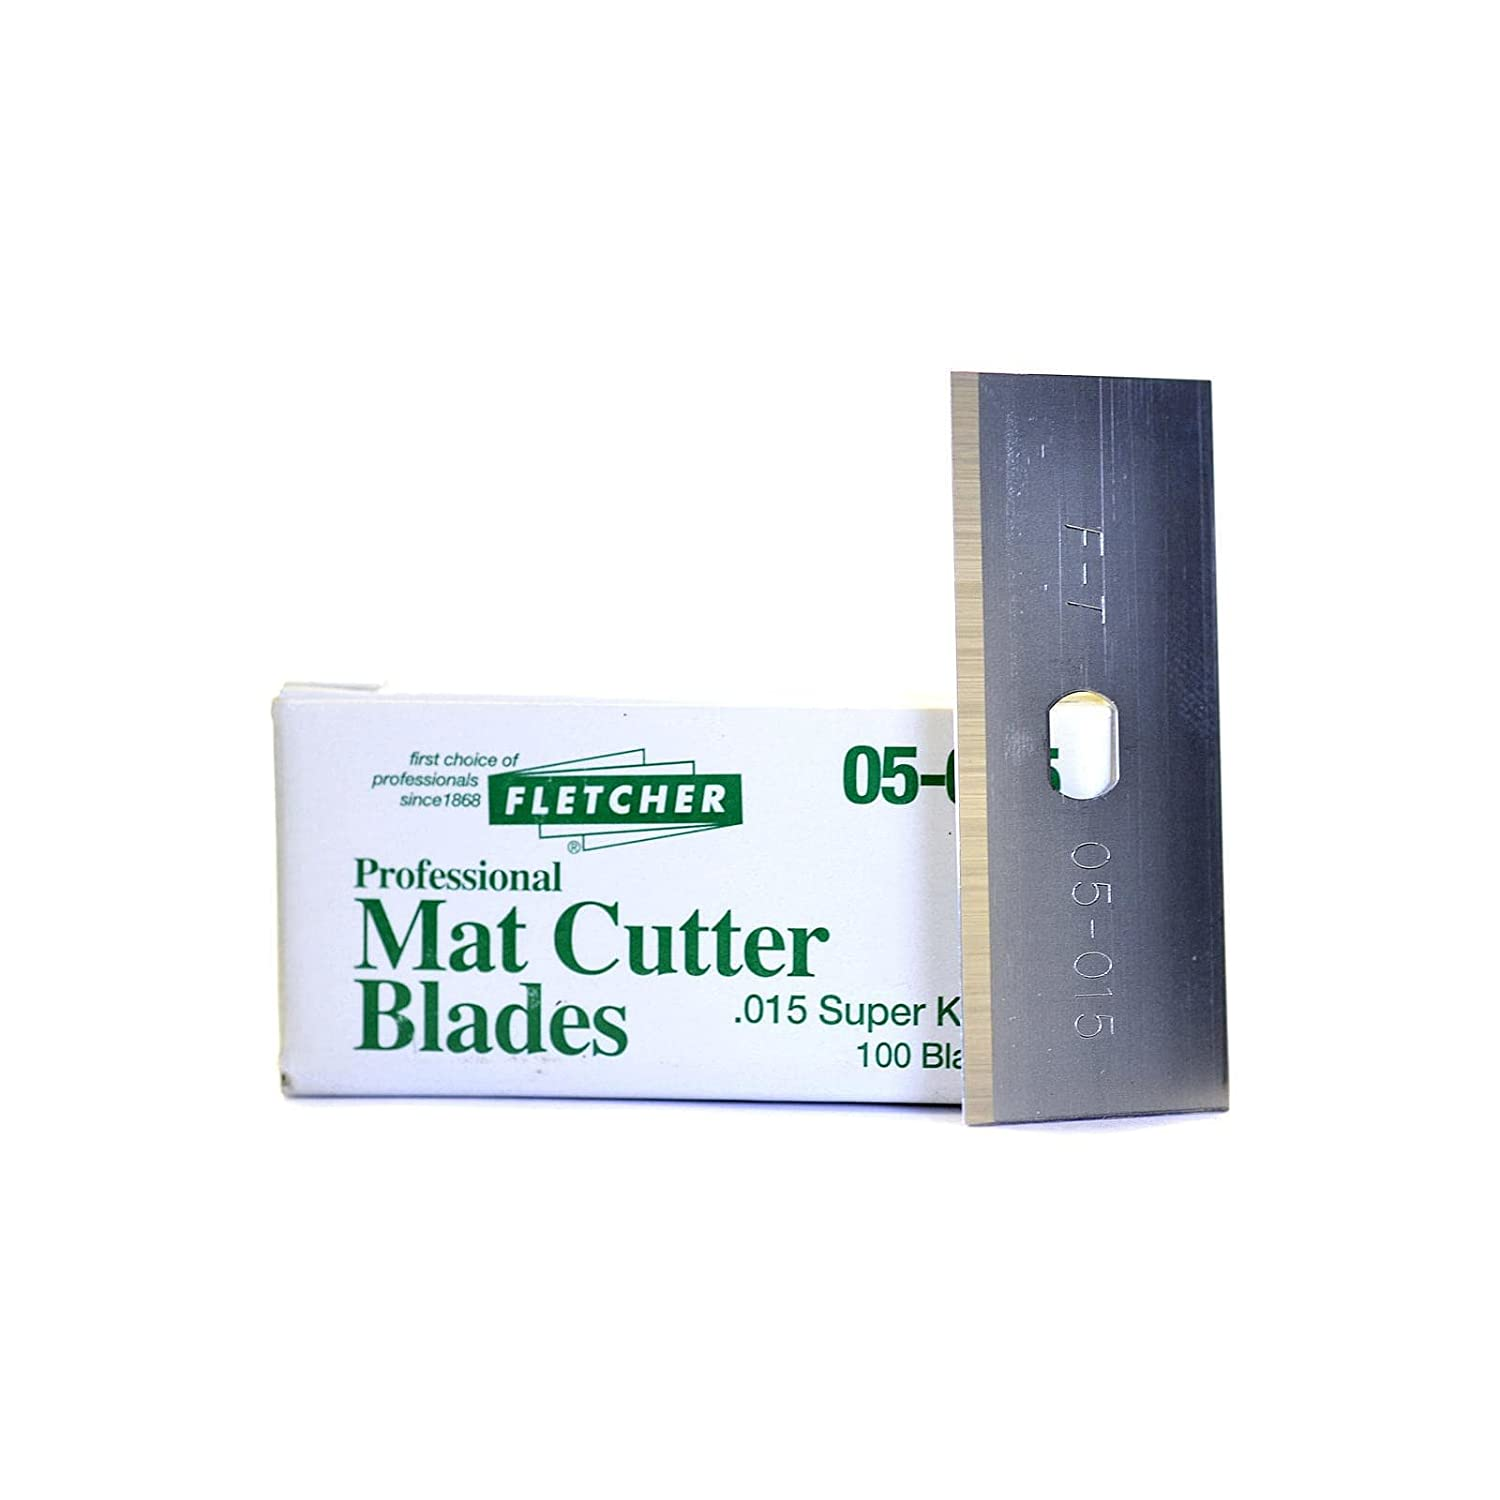 Fletcher-Terry MatMate Replacement Blades pack of 100 blades